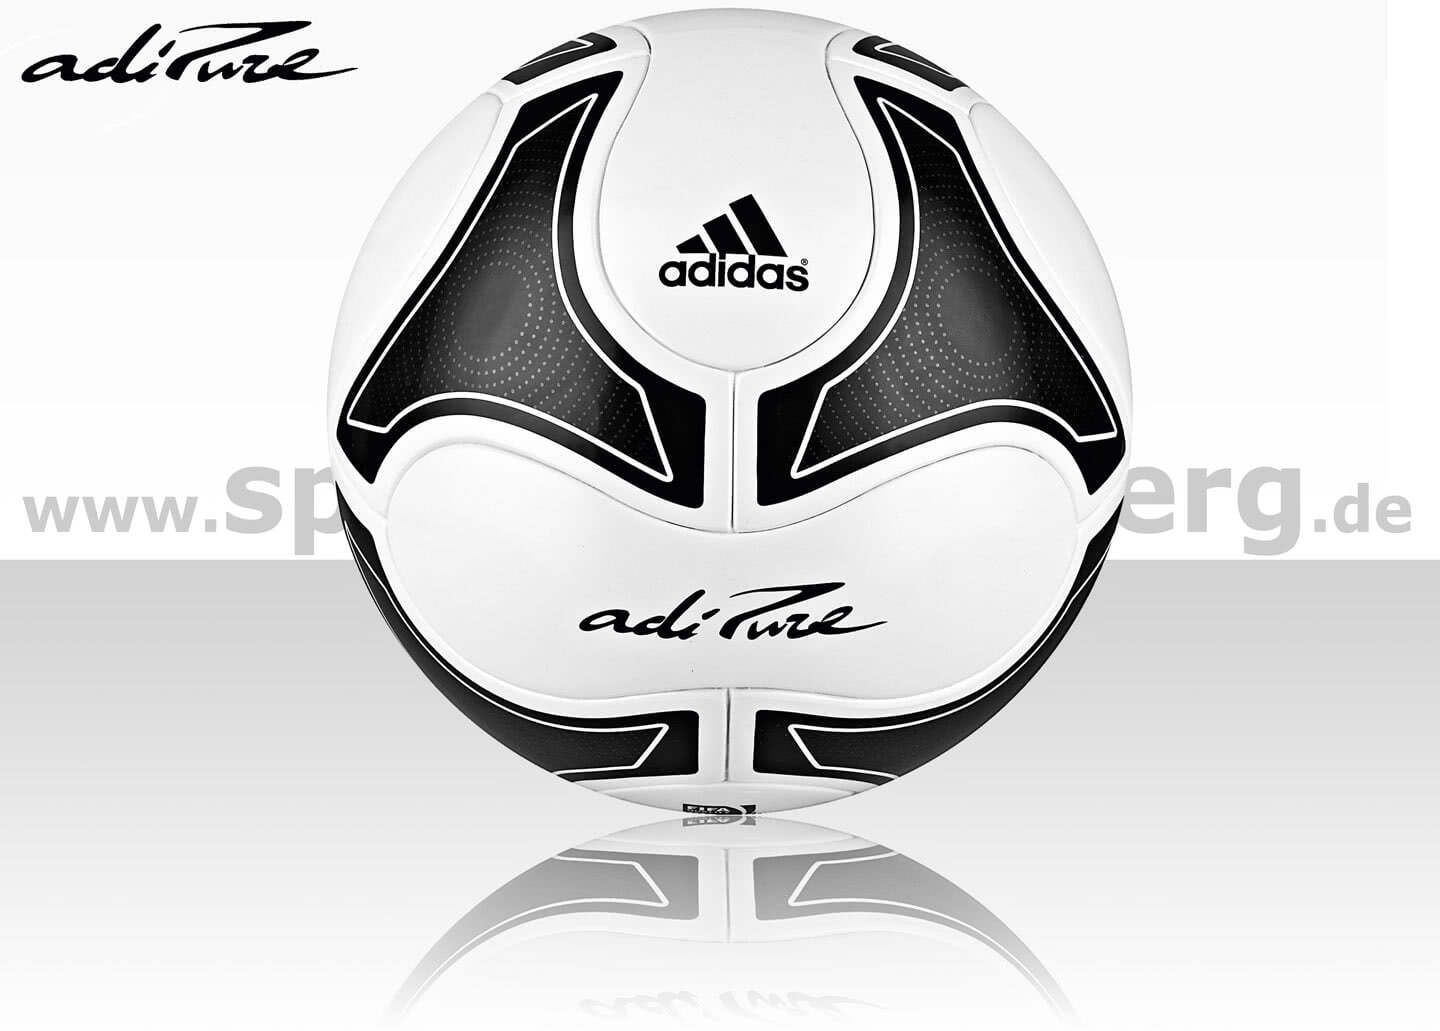 balones - Balones by Diego! Adidas-adipure-2011-spielball